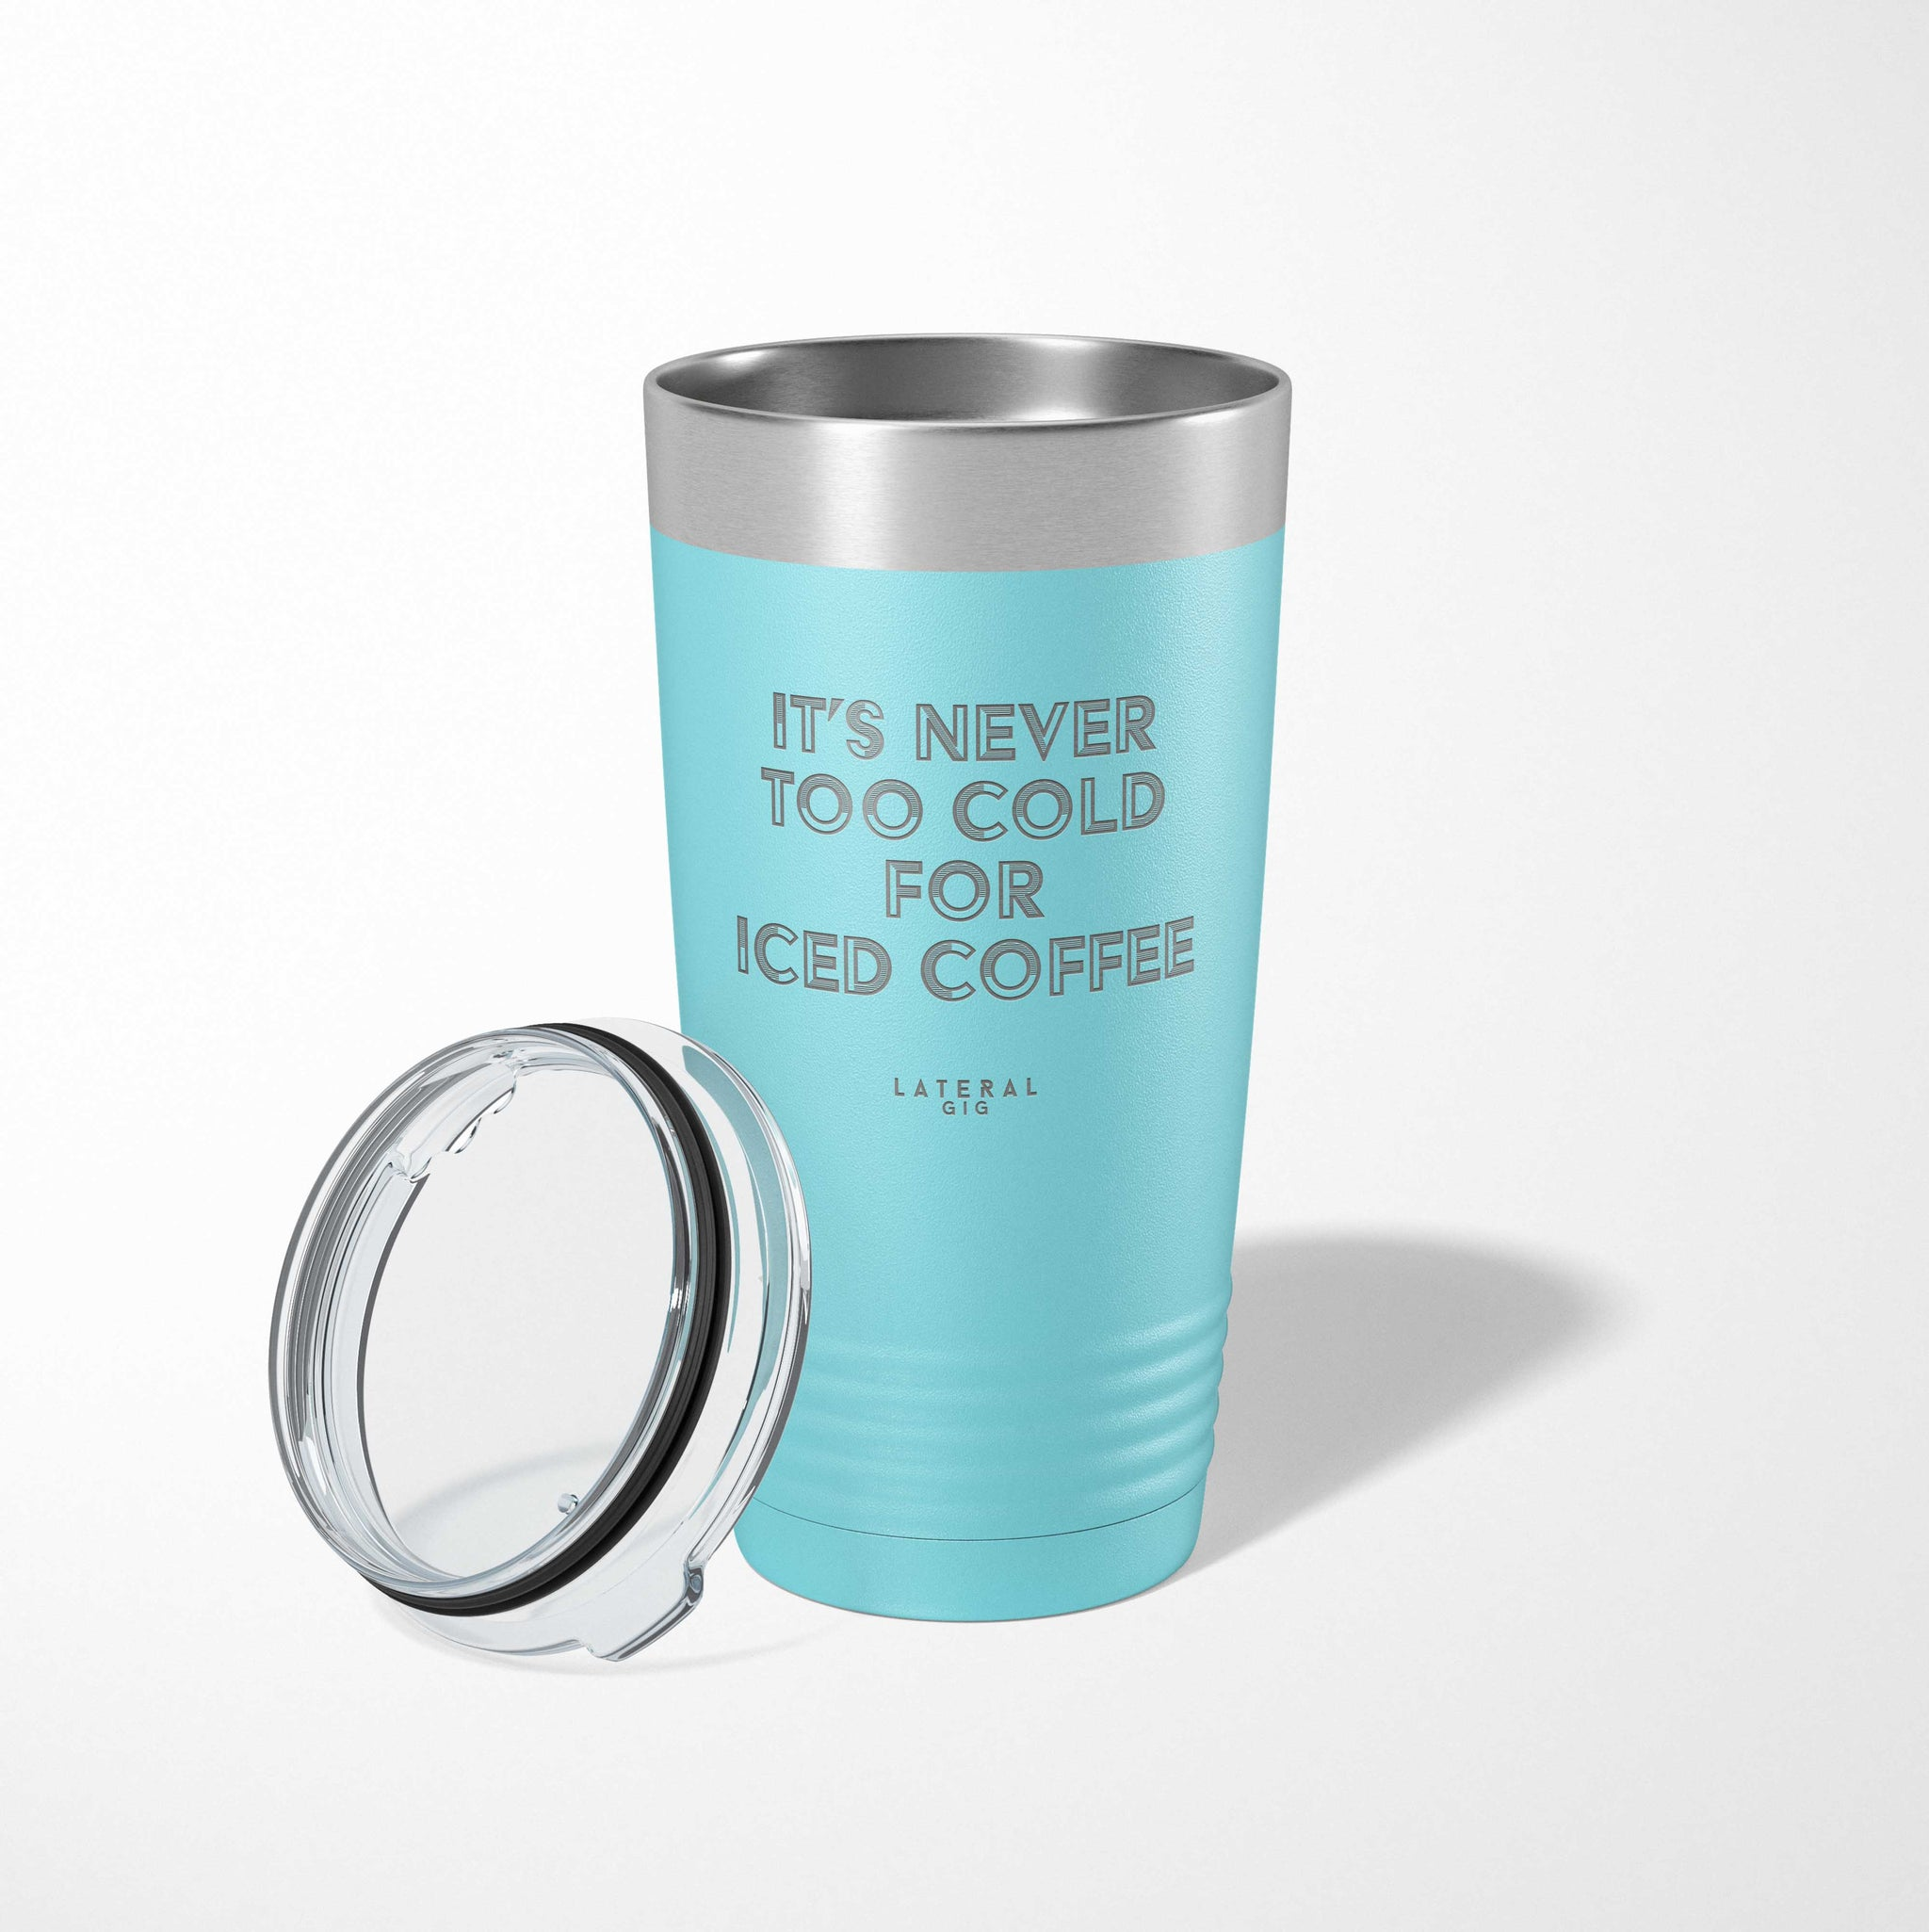 It's Never Too Cold For Iced Coffee Laser Etched Tumbler